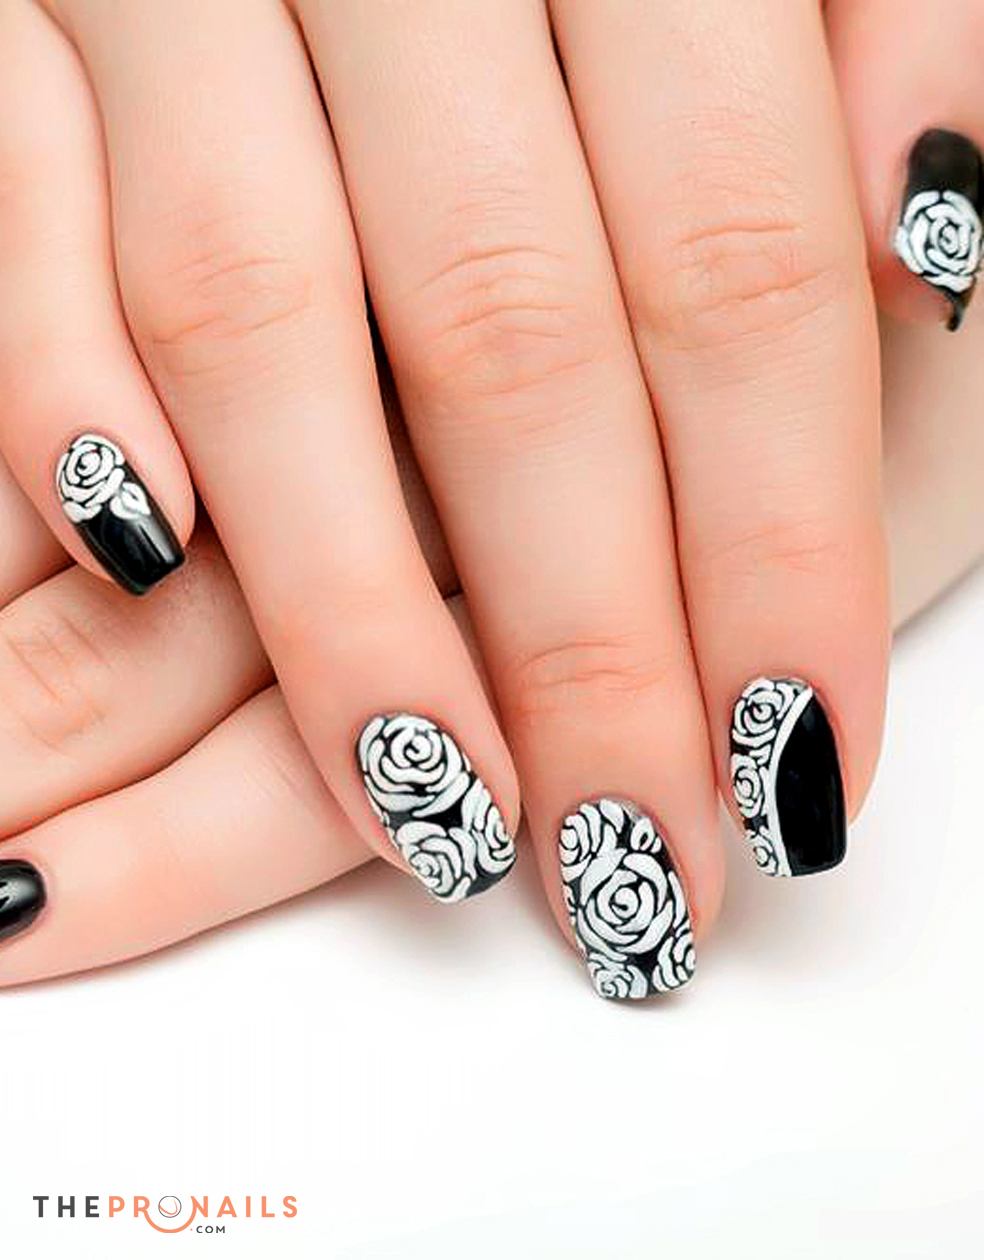 Tek nail spa waterbury ct hours nail ftempo for Nail salon hours